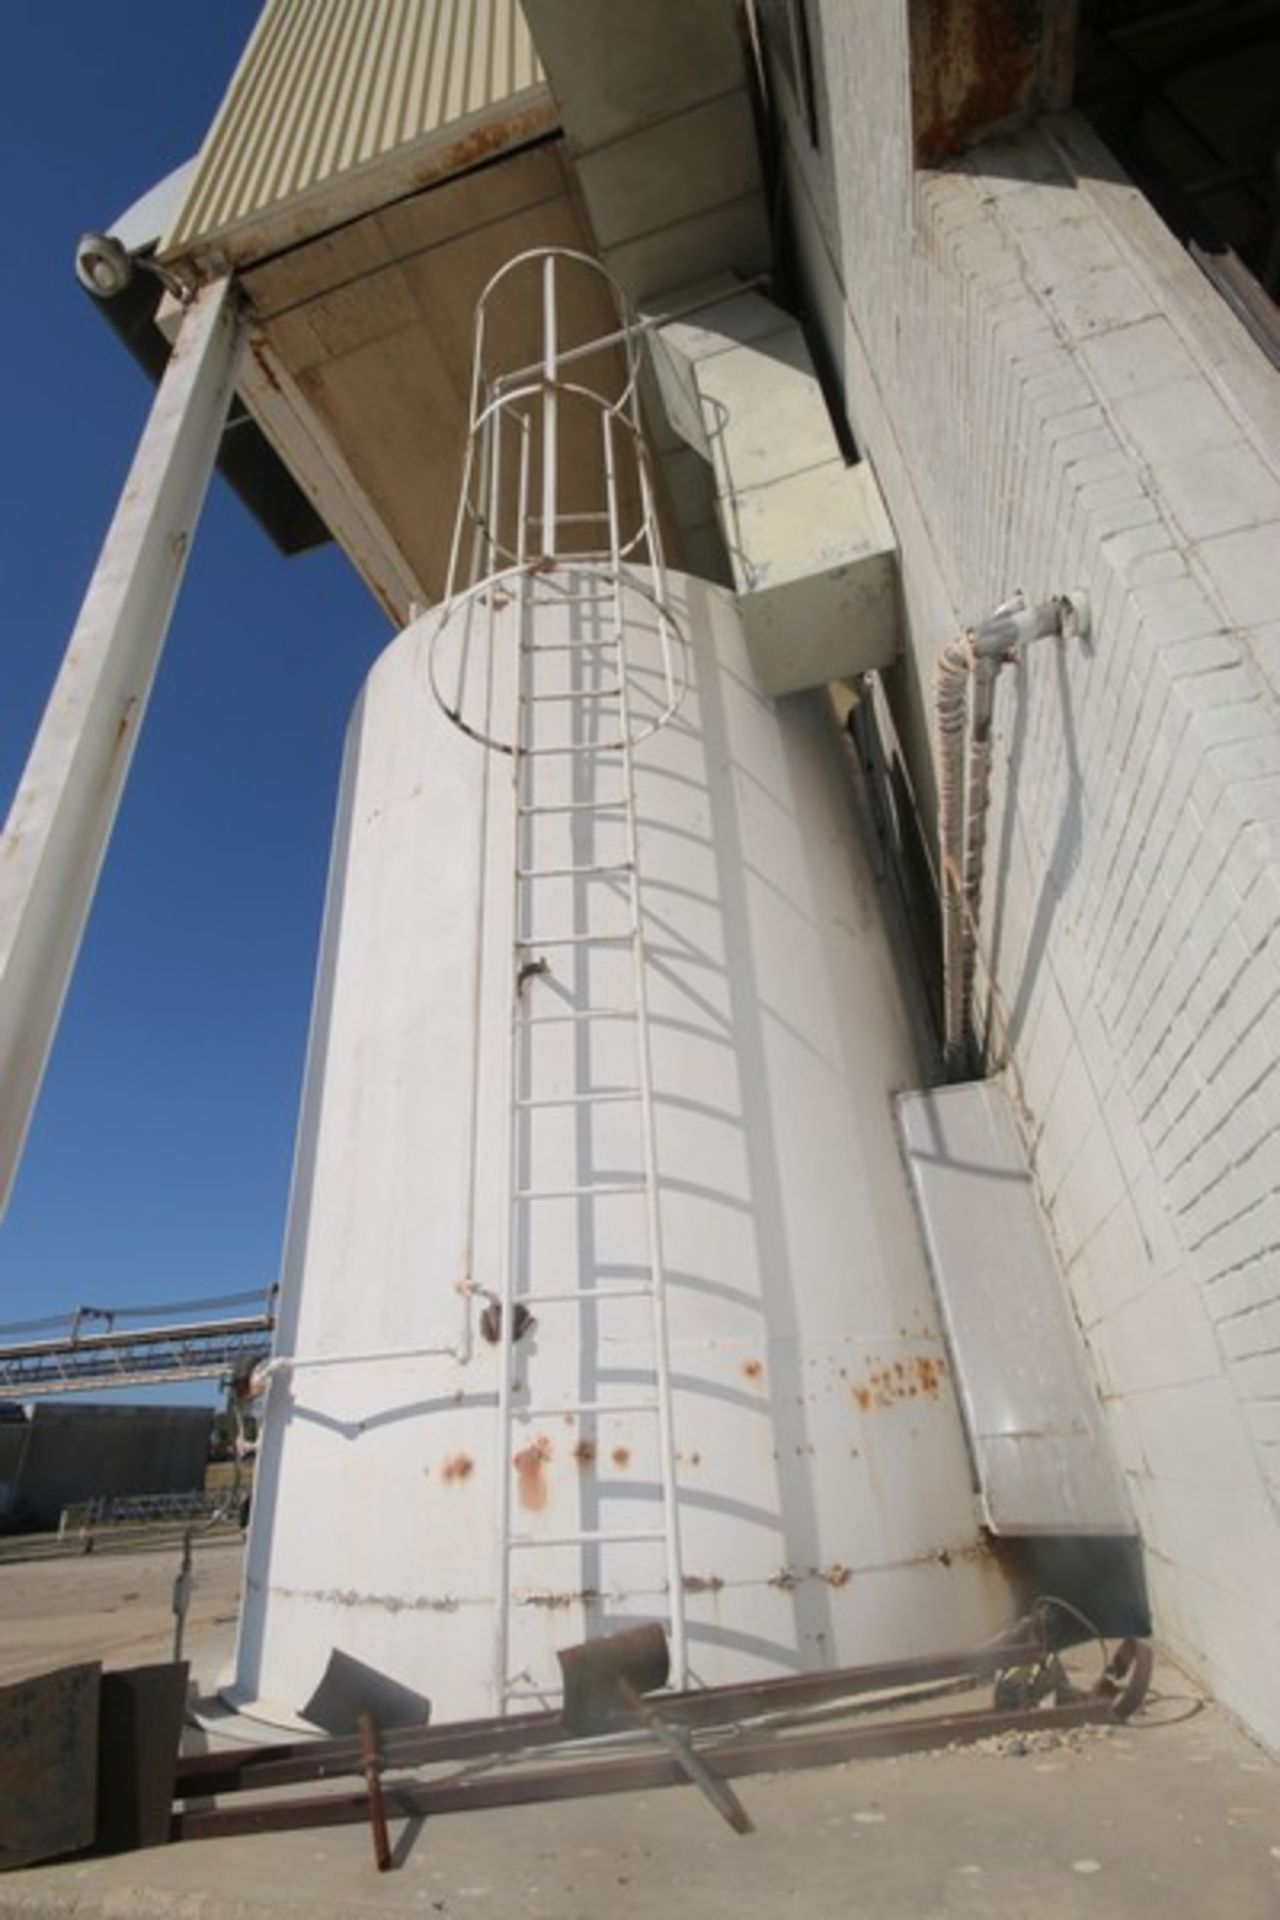 Mueller Aprox. 6,500 Gal. S/S Vertical Crystallizer, S/N 131825, Tank Dims.: Aprox. 9' Dia. x 14' - Image 3 of 12